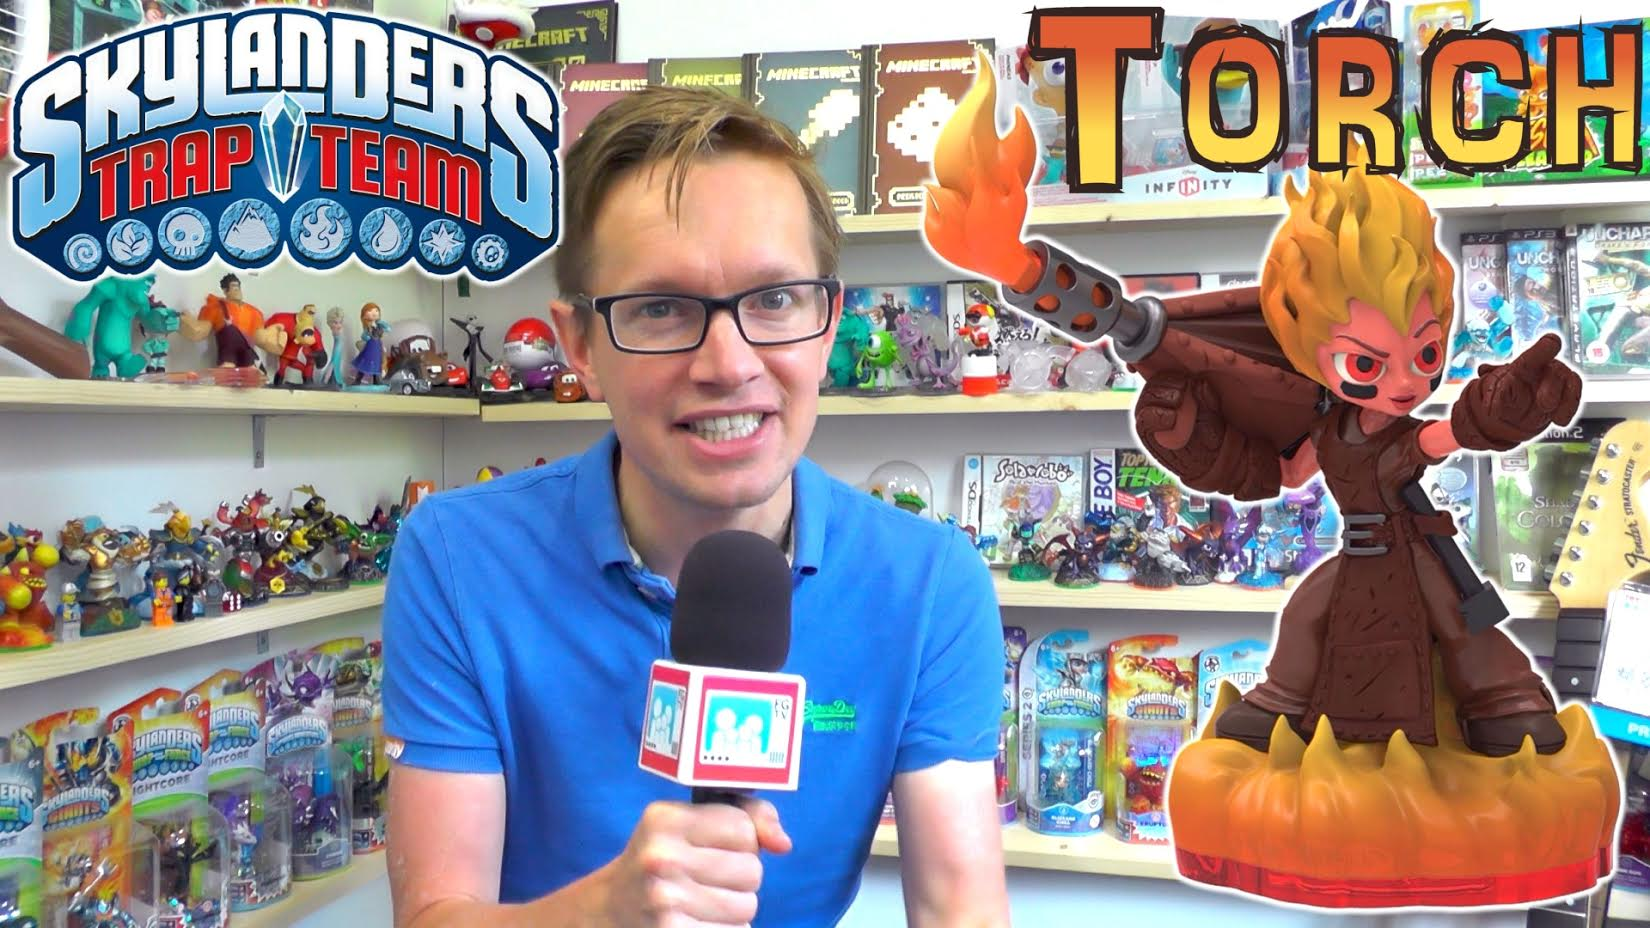 New Skylanders Trap Team character revealed: Torch!